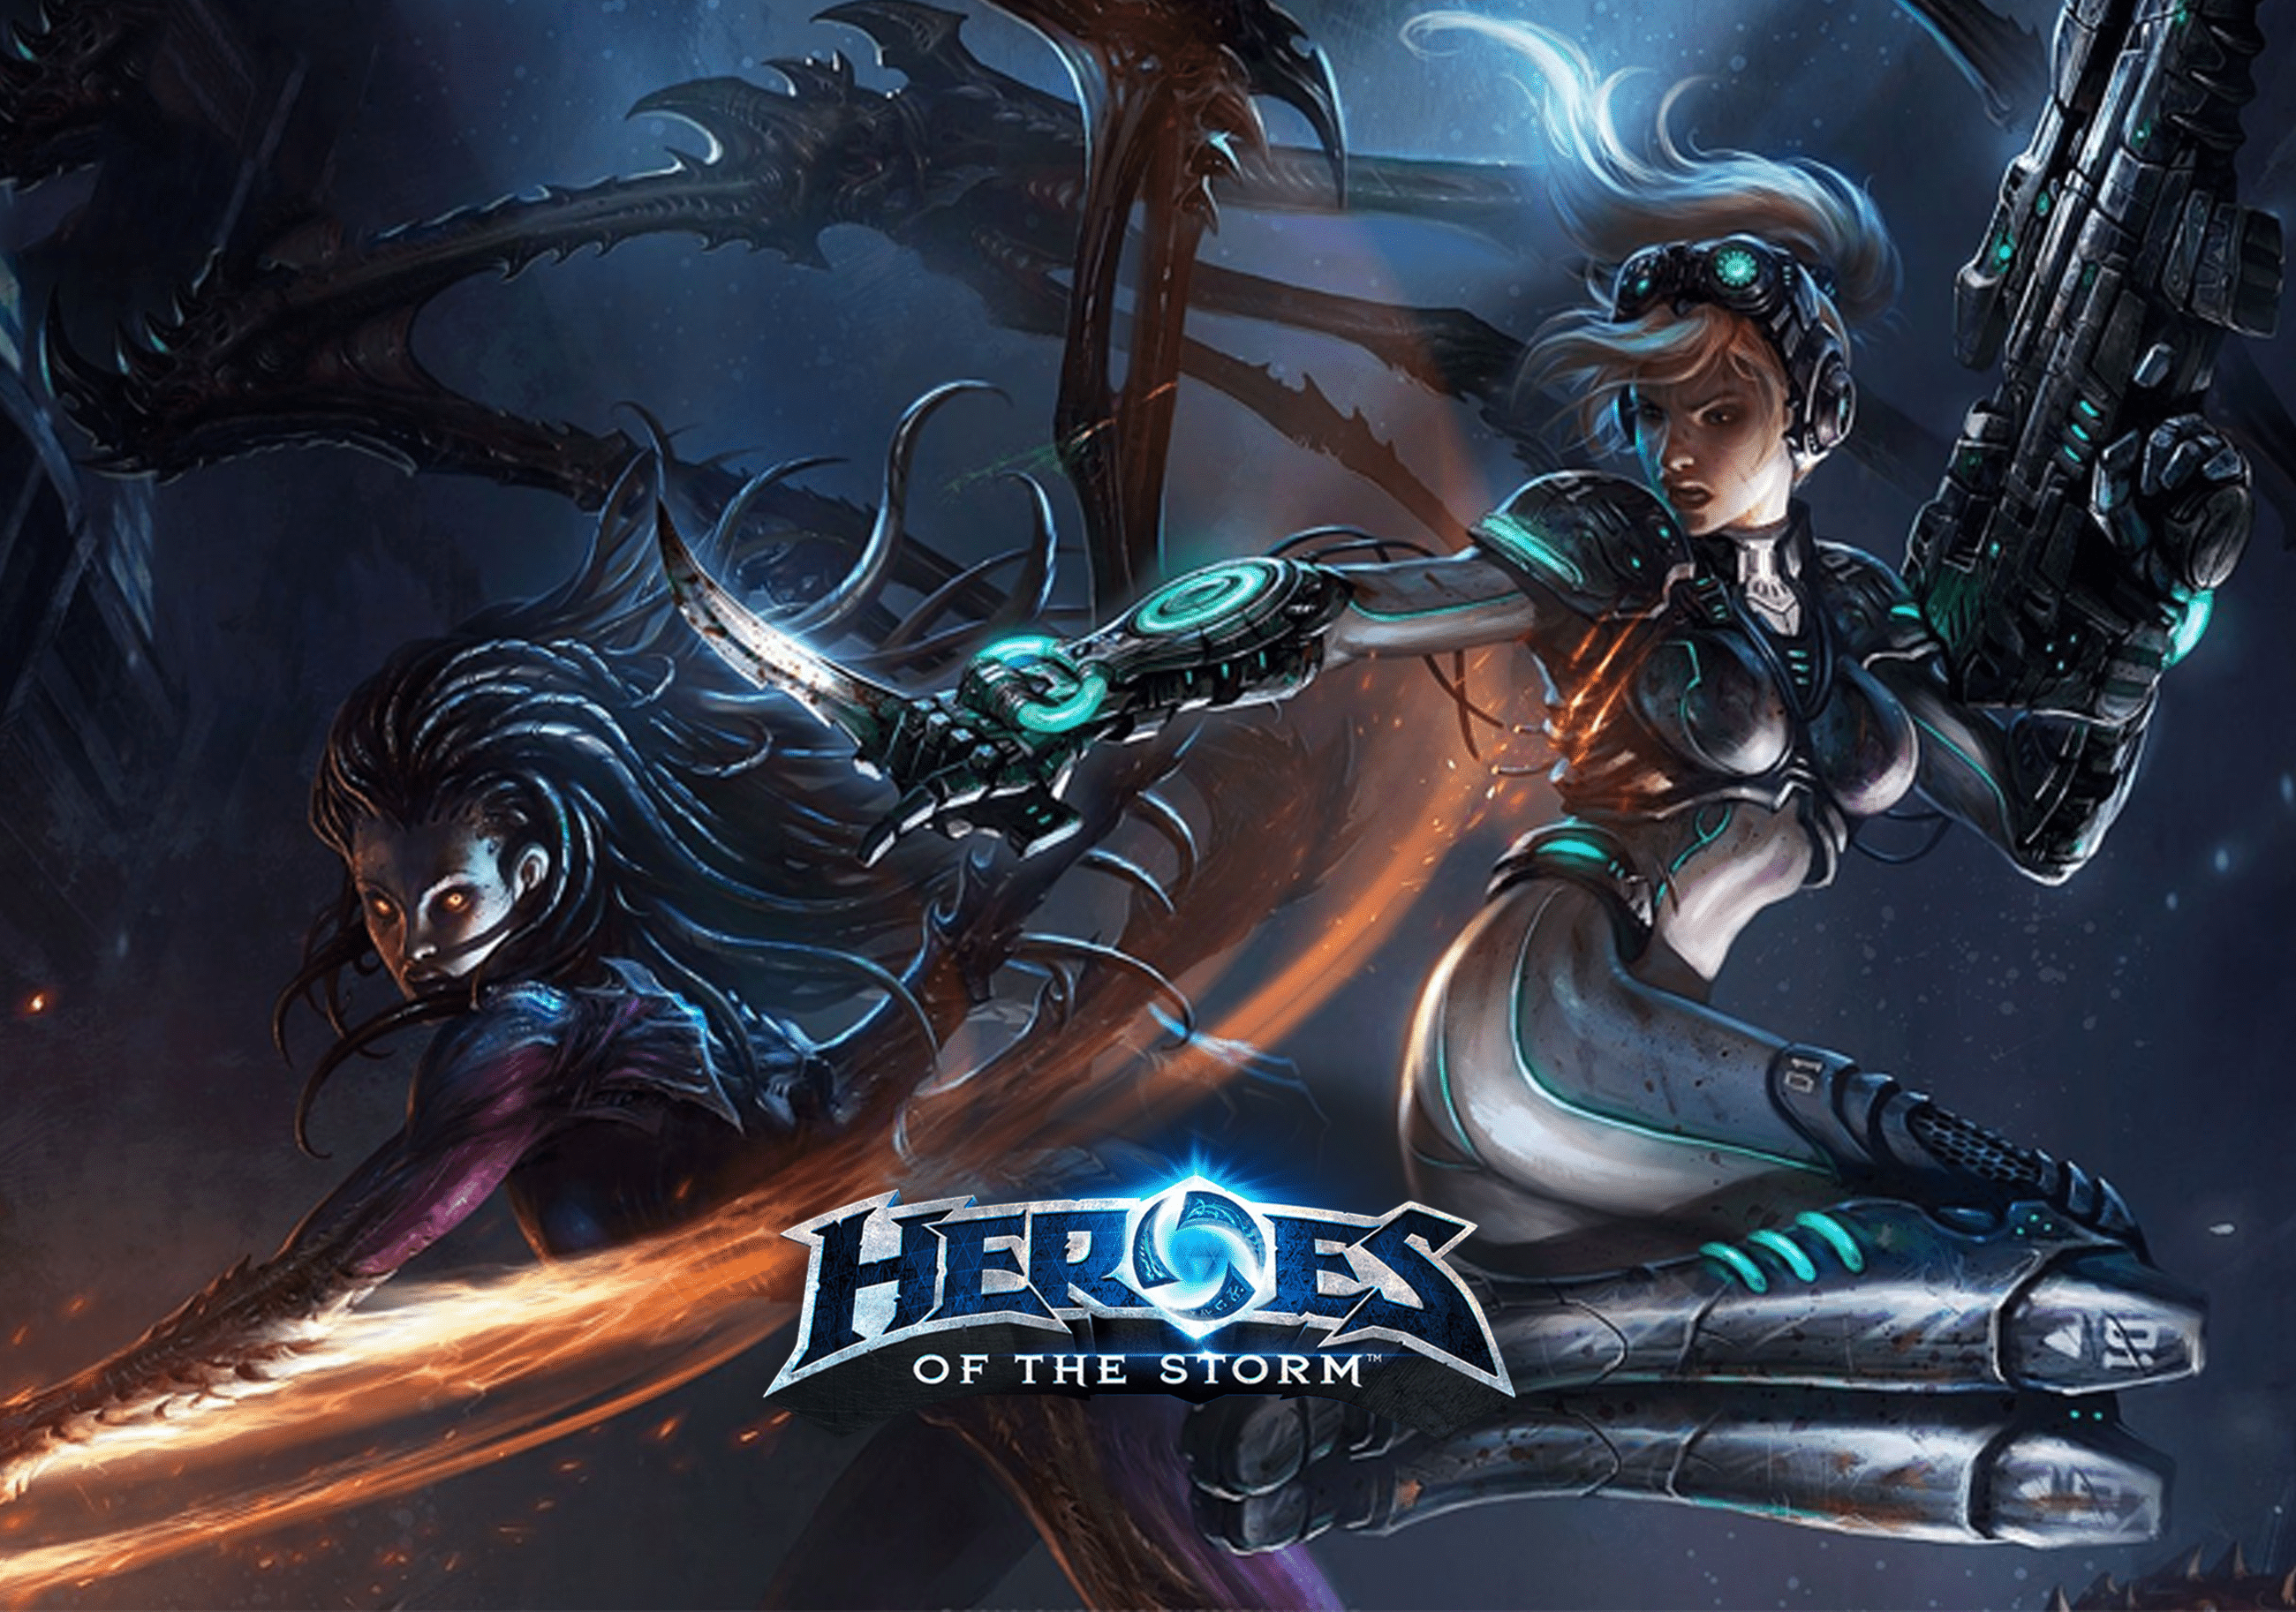 Heroes of the Storm Character Image with game Logo in the foreground